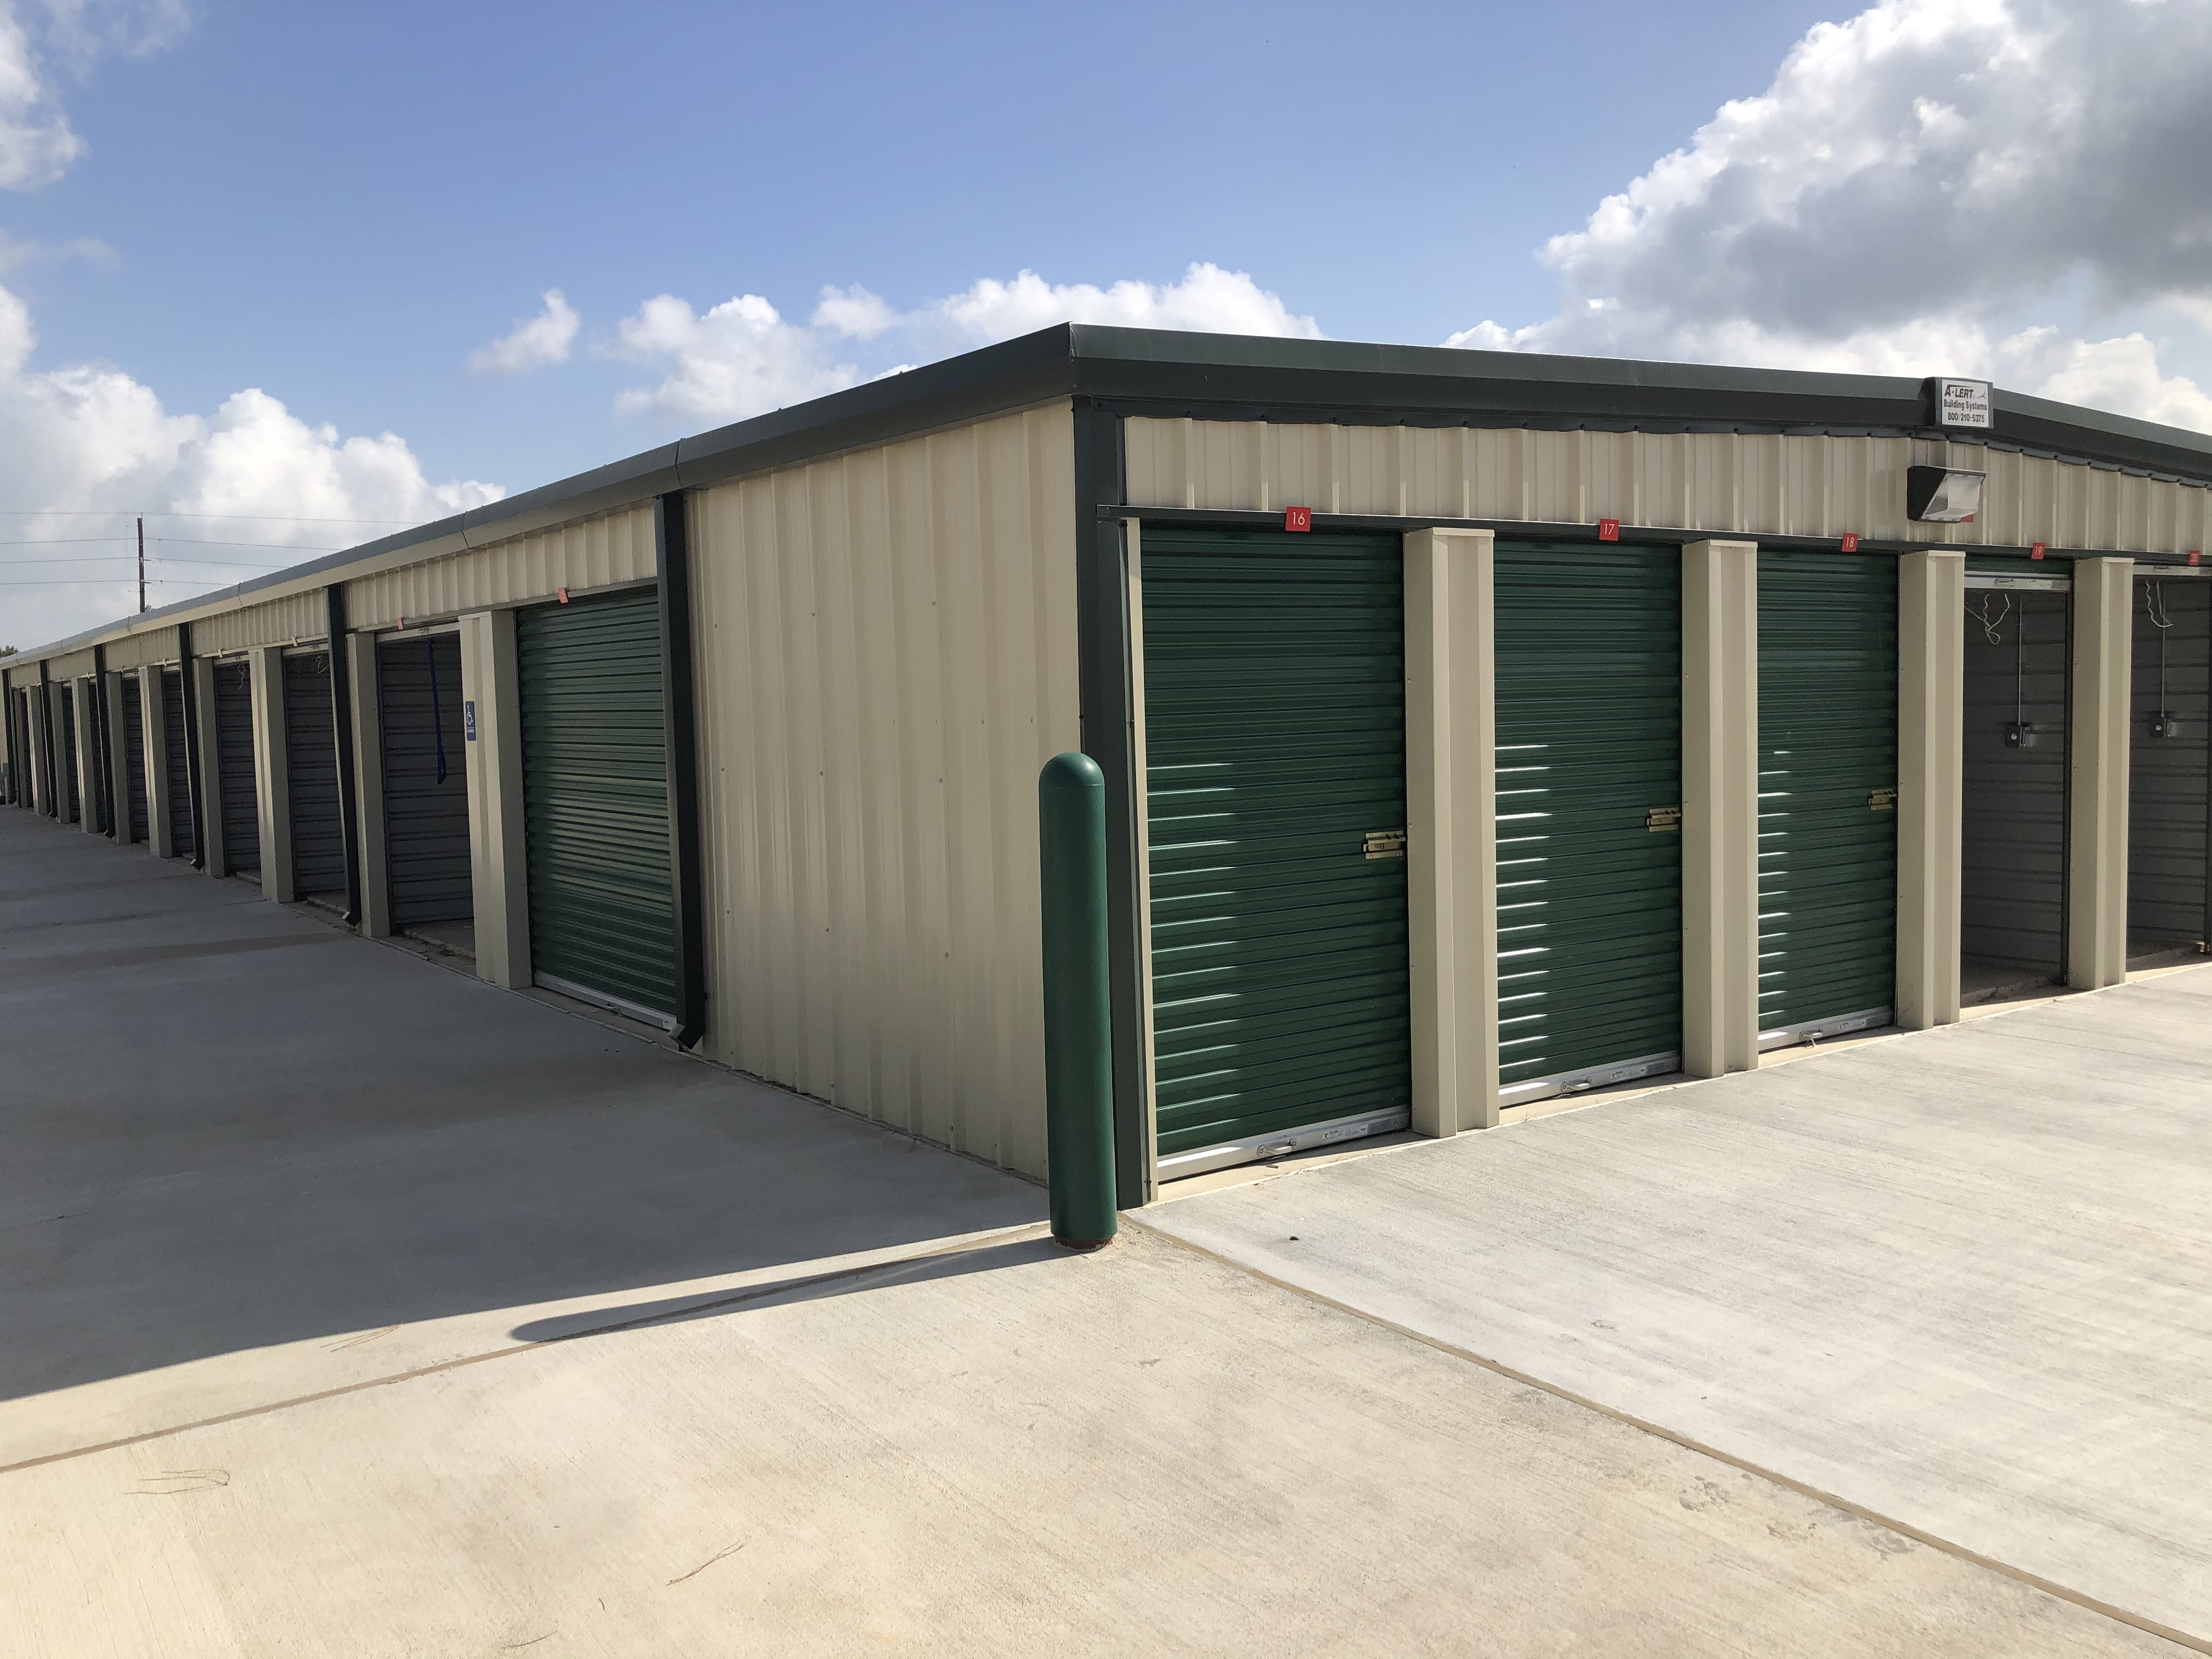 Kathy's Kampground & Storage in Sealy, TX